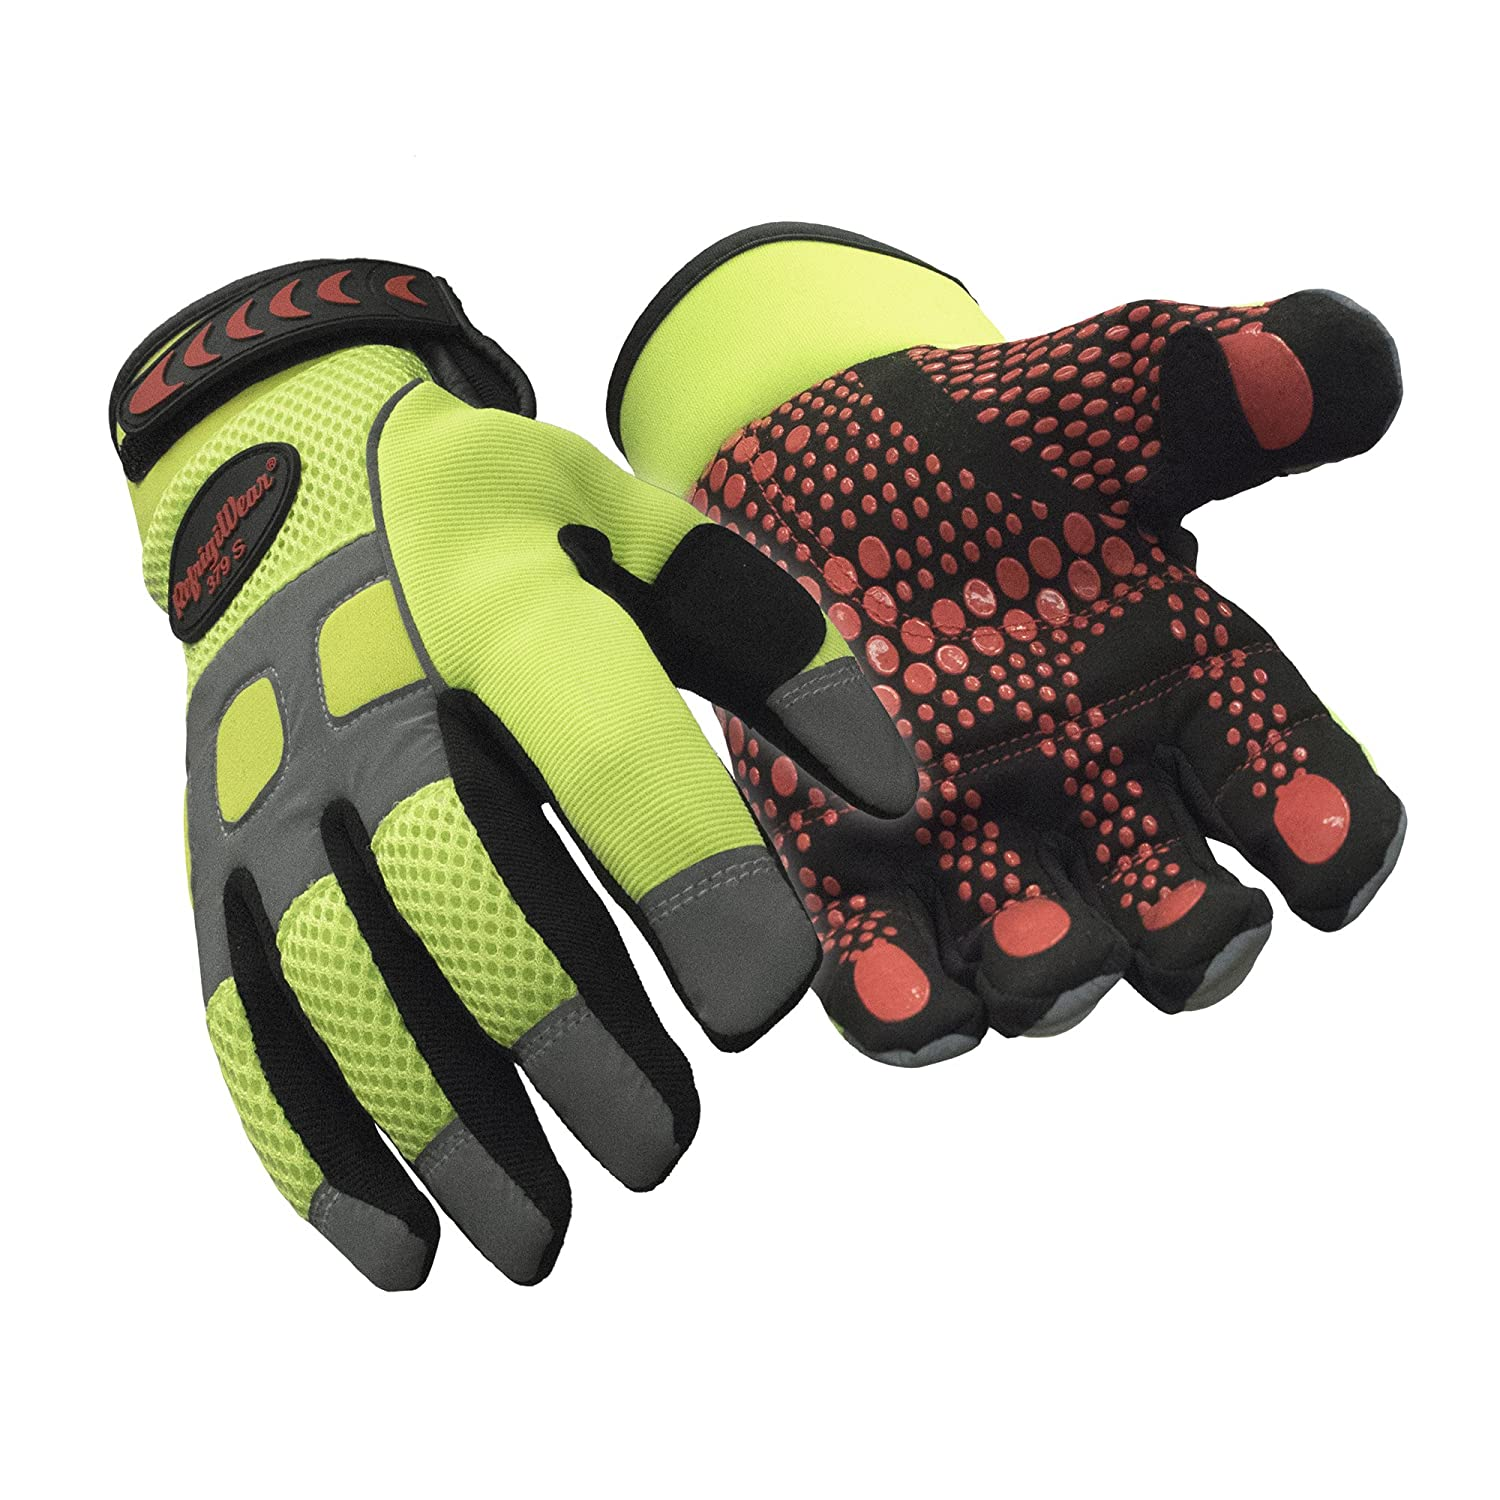 RefrigiWear Mens Insulated Fleece Lined HiVis Super Grip Performance Gloves Reflective with Silicone Grip Dots